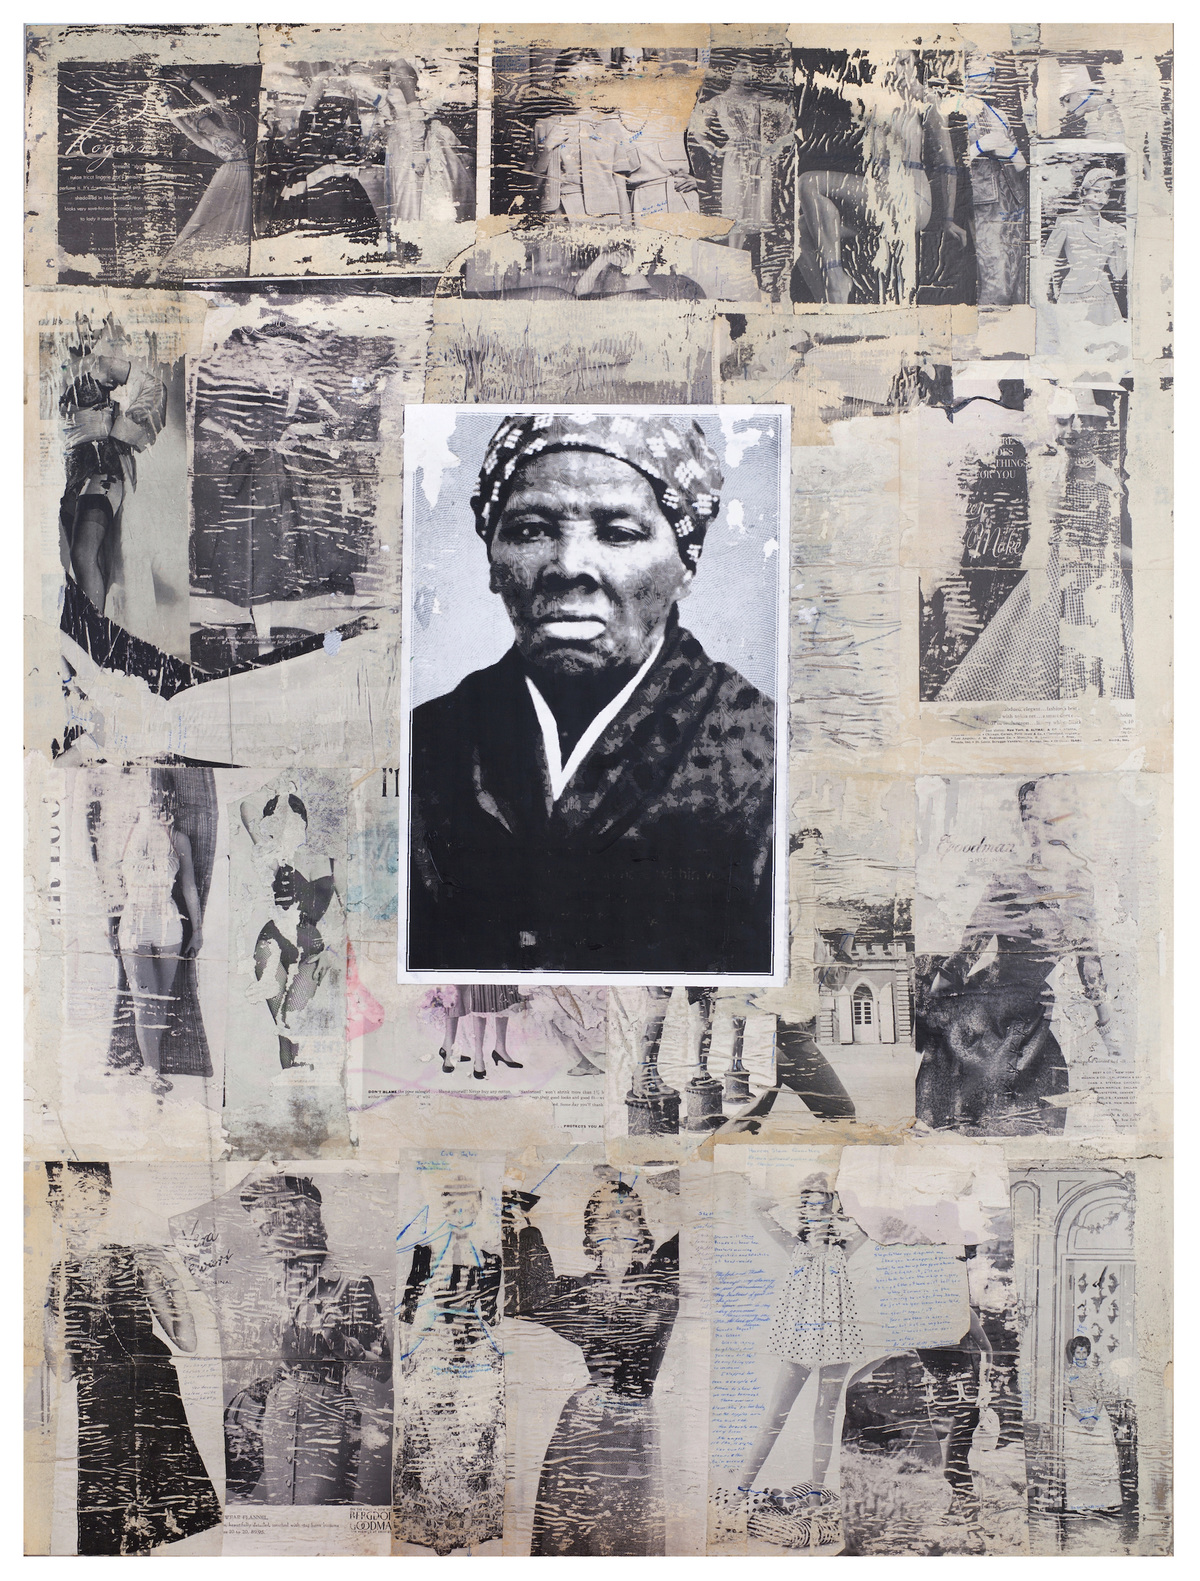 Victor Davson Misogyny Papers/Apology (Harriet's Gaze) acrylic medium, magazine and newspaper clippings, and image of Harriet Tubman on hardboard panel